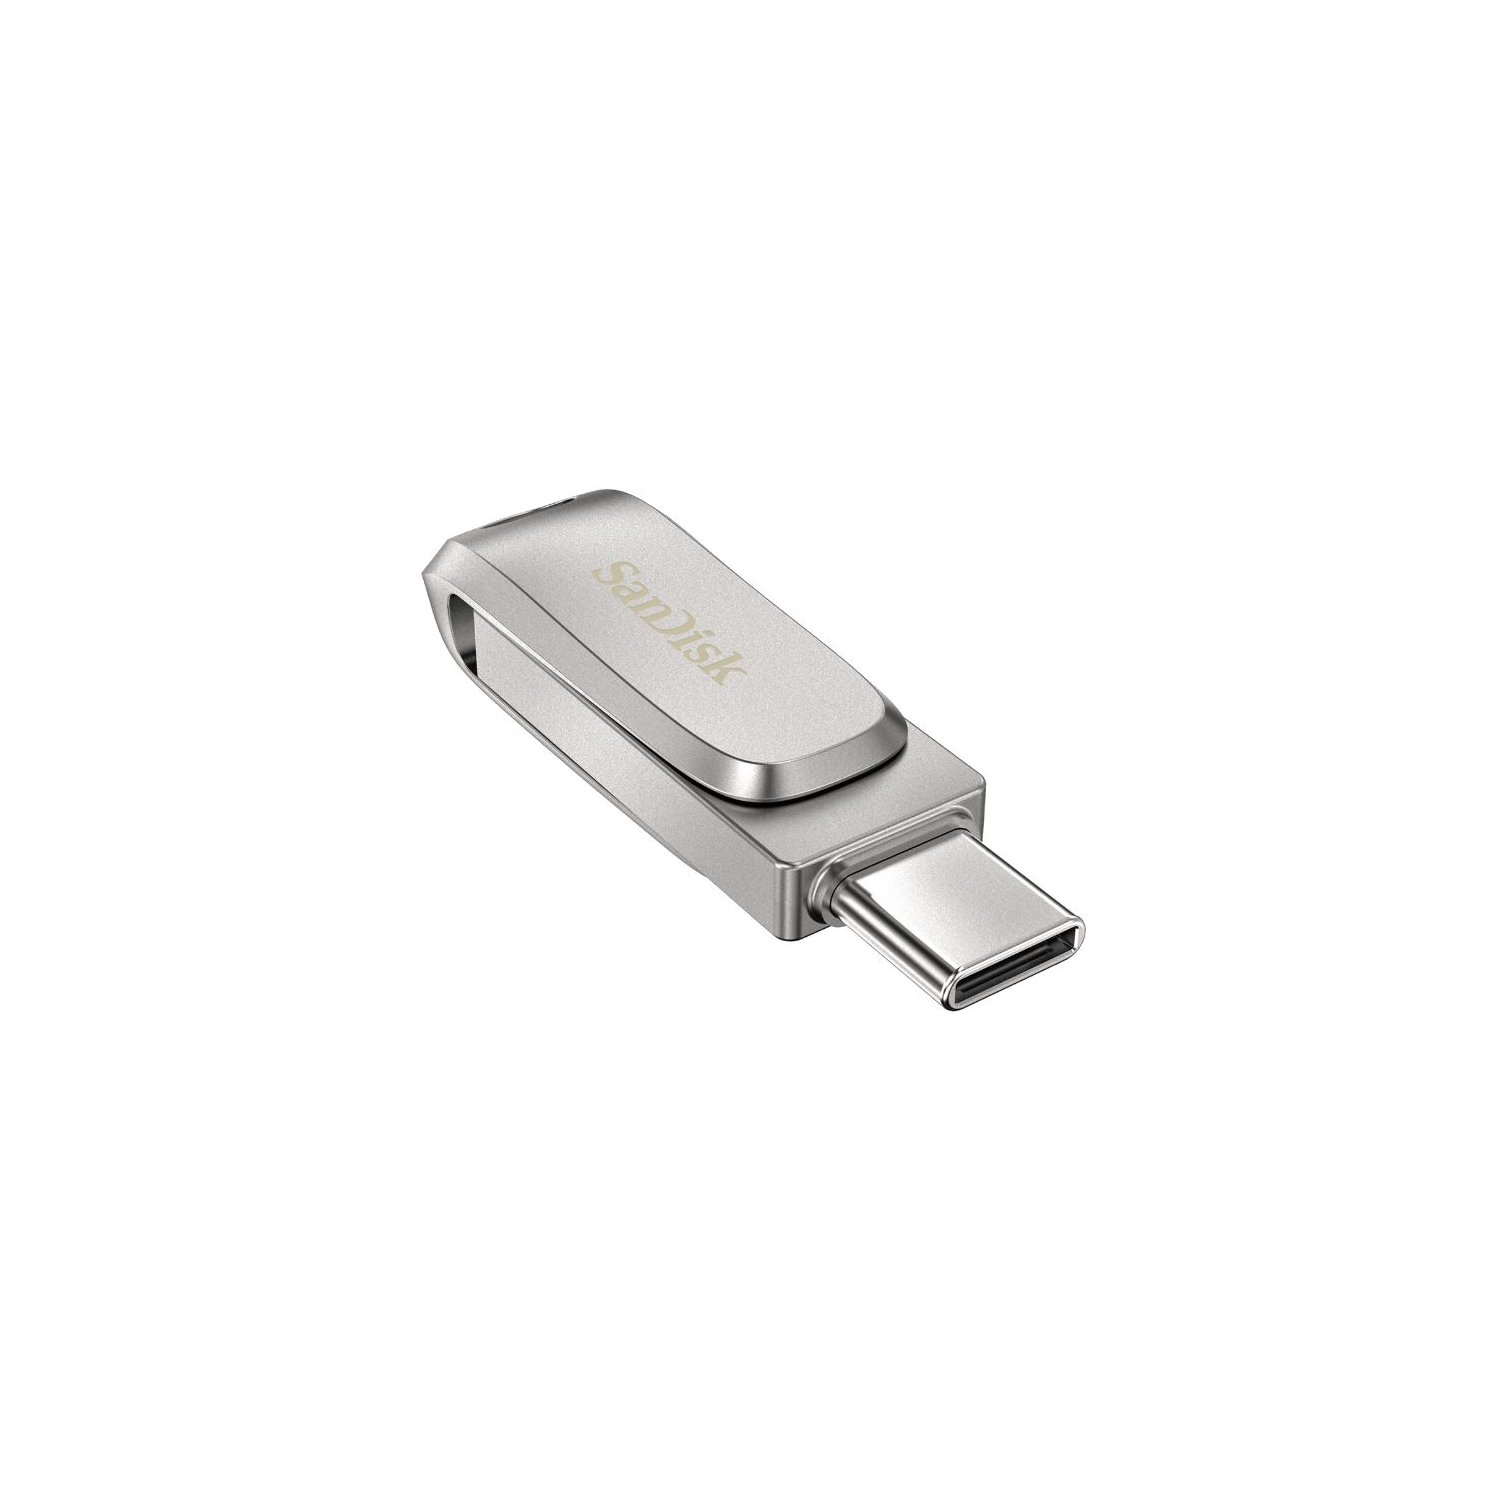 Pendrive SANDISK Ultra Dual Drive Luxe 32GB SDDDC4-032G-G46